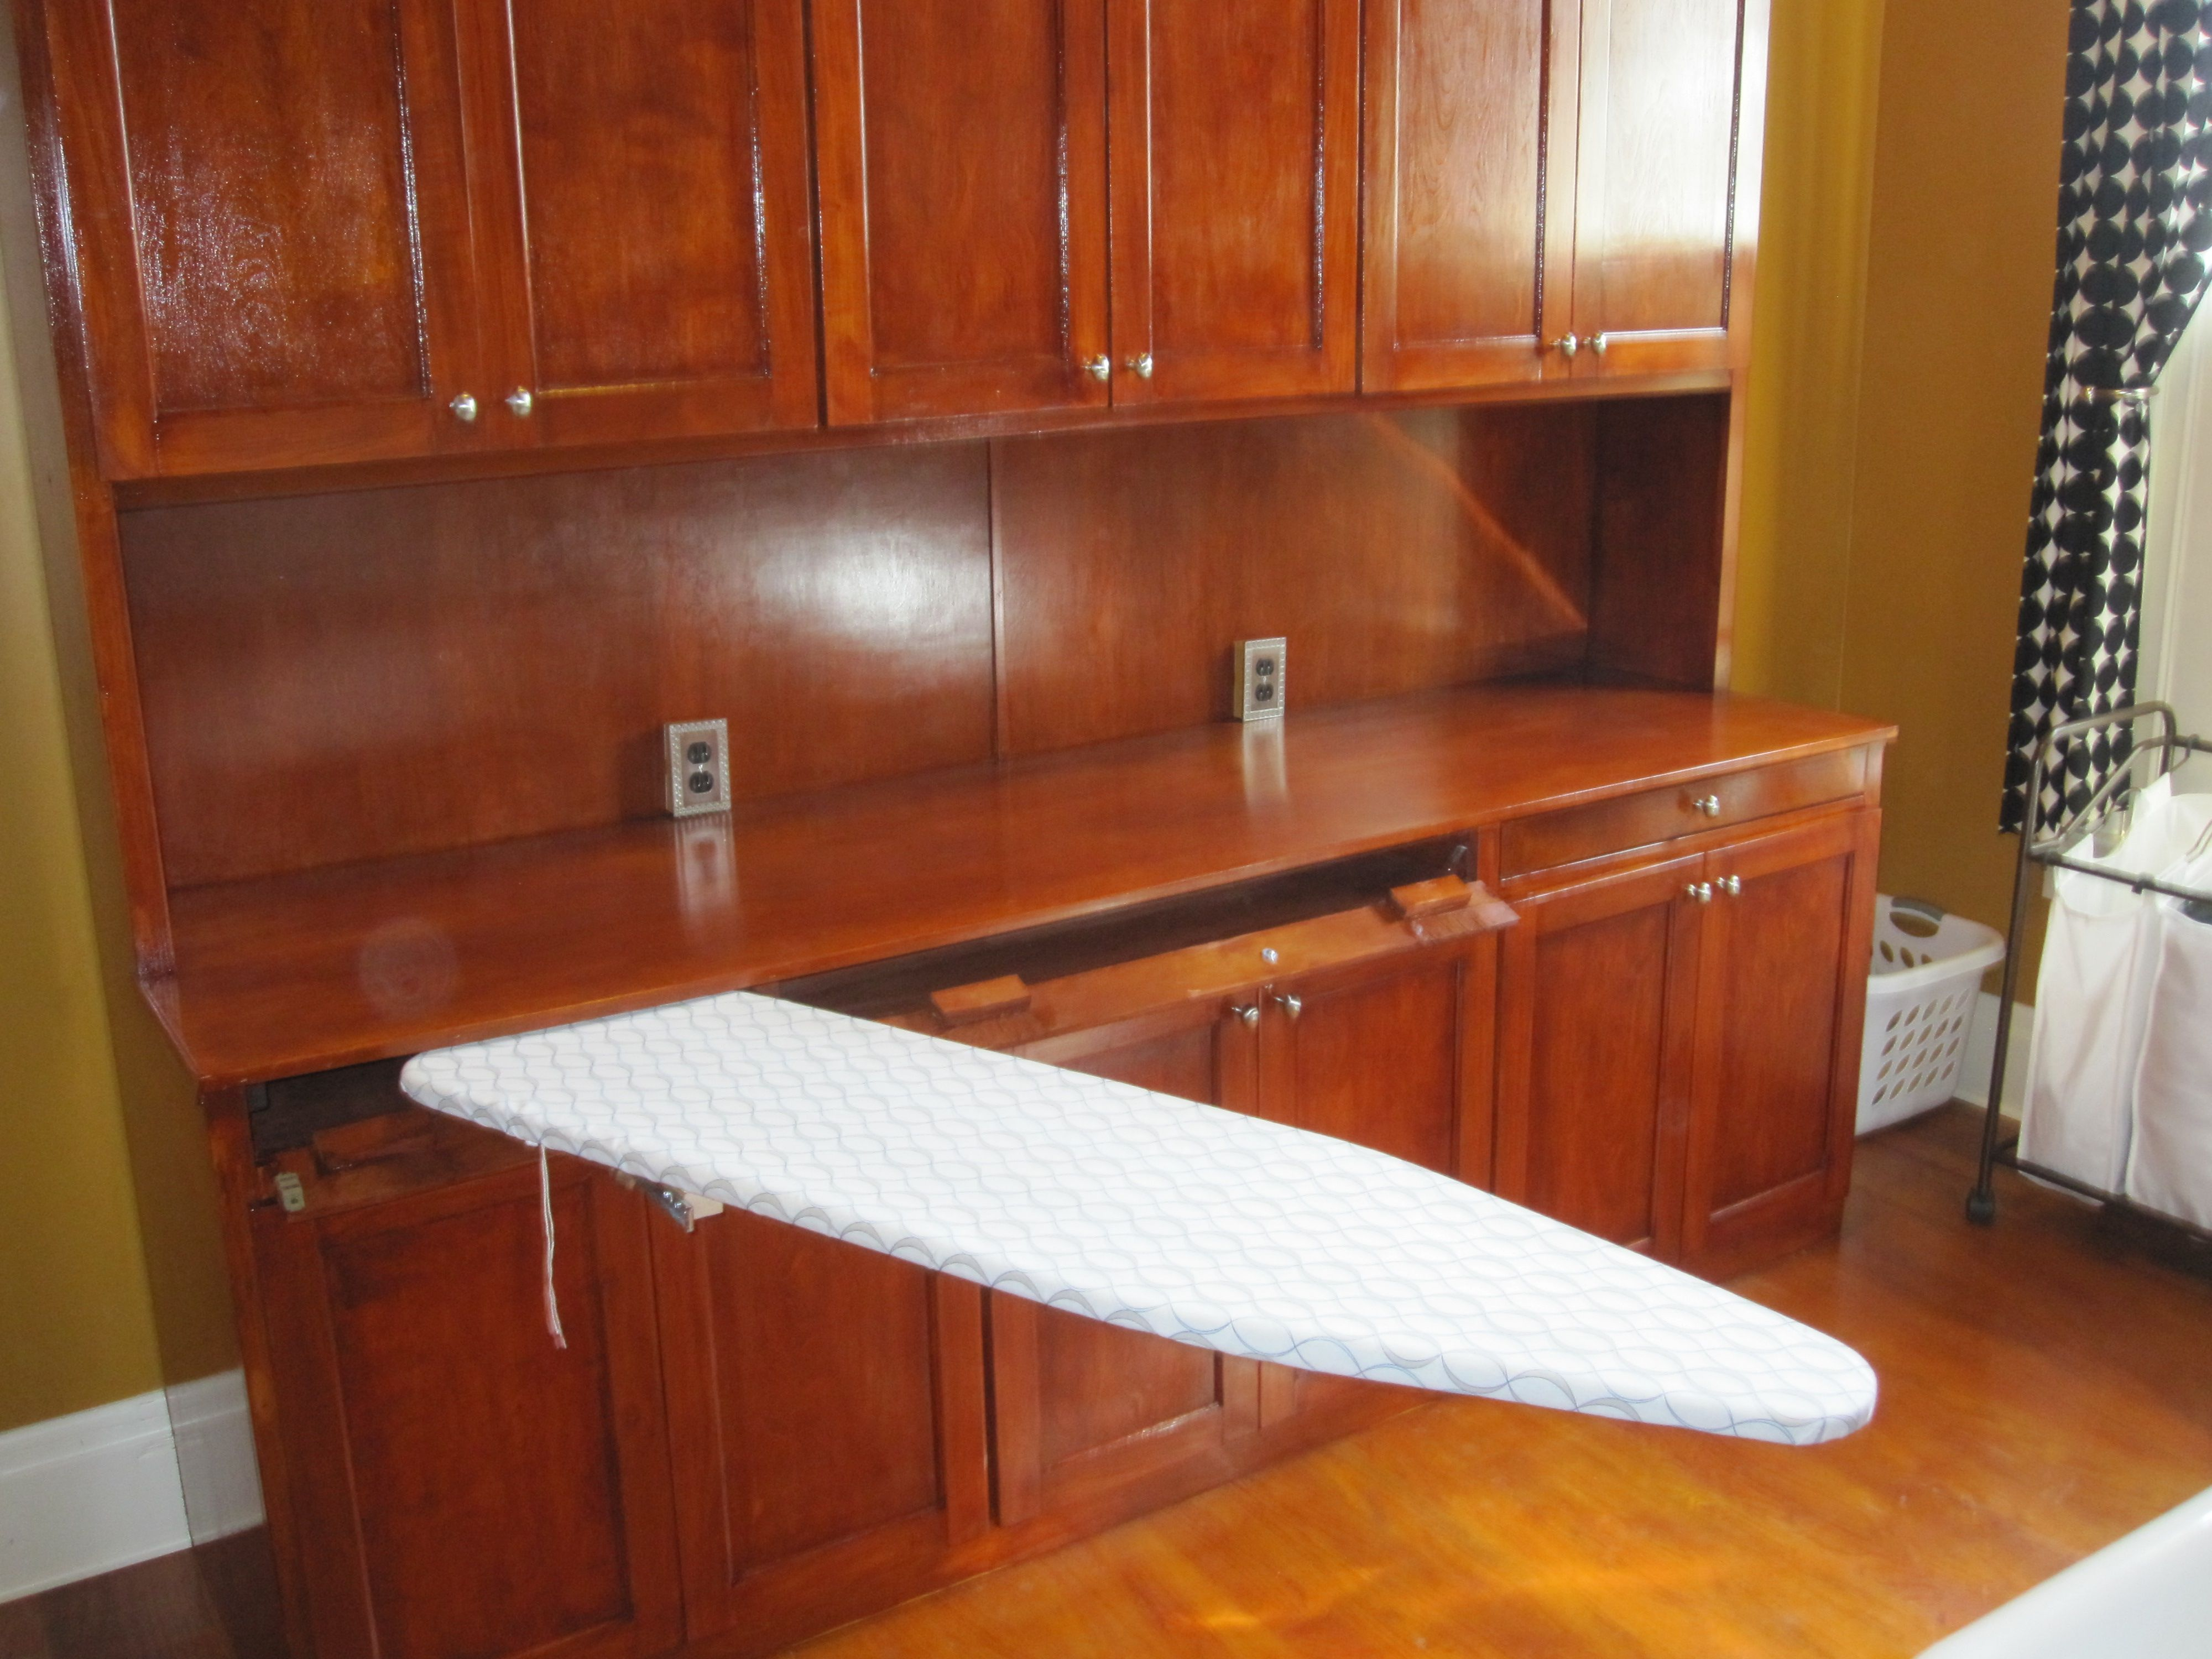 Fold Up Ironing Boards Are Unsightly And Too Short This Full Size Board Is Sturdy Slides Into This Narr Small Laundry Rooms Laundry Room Laundry Room Design